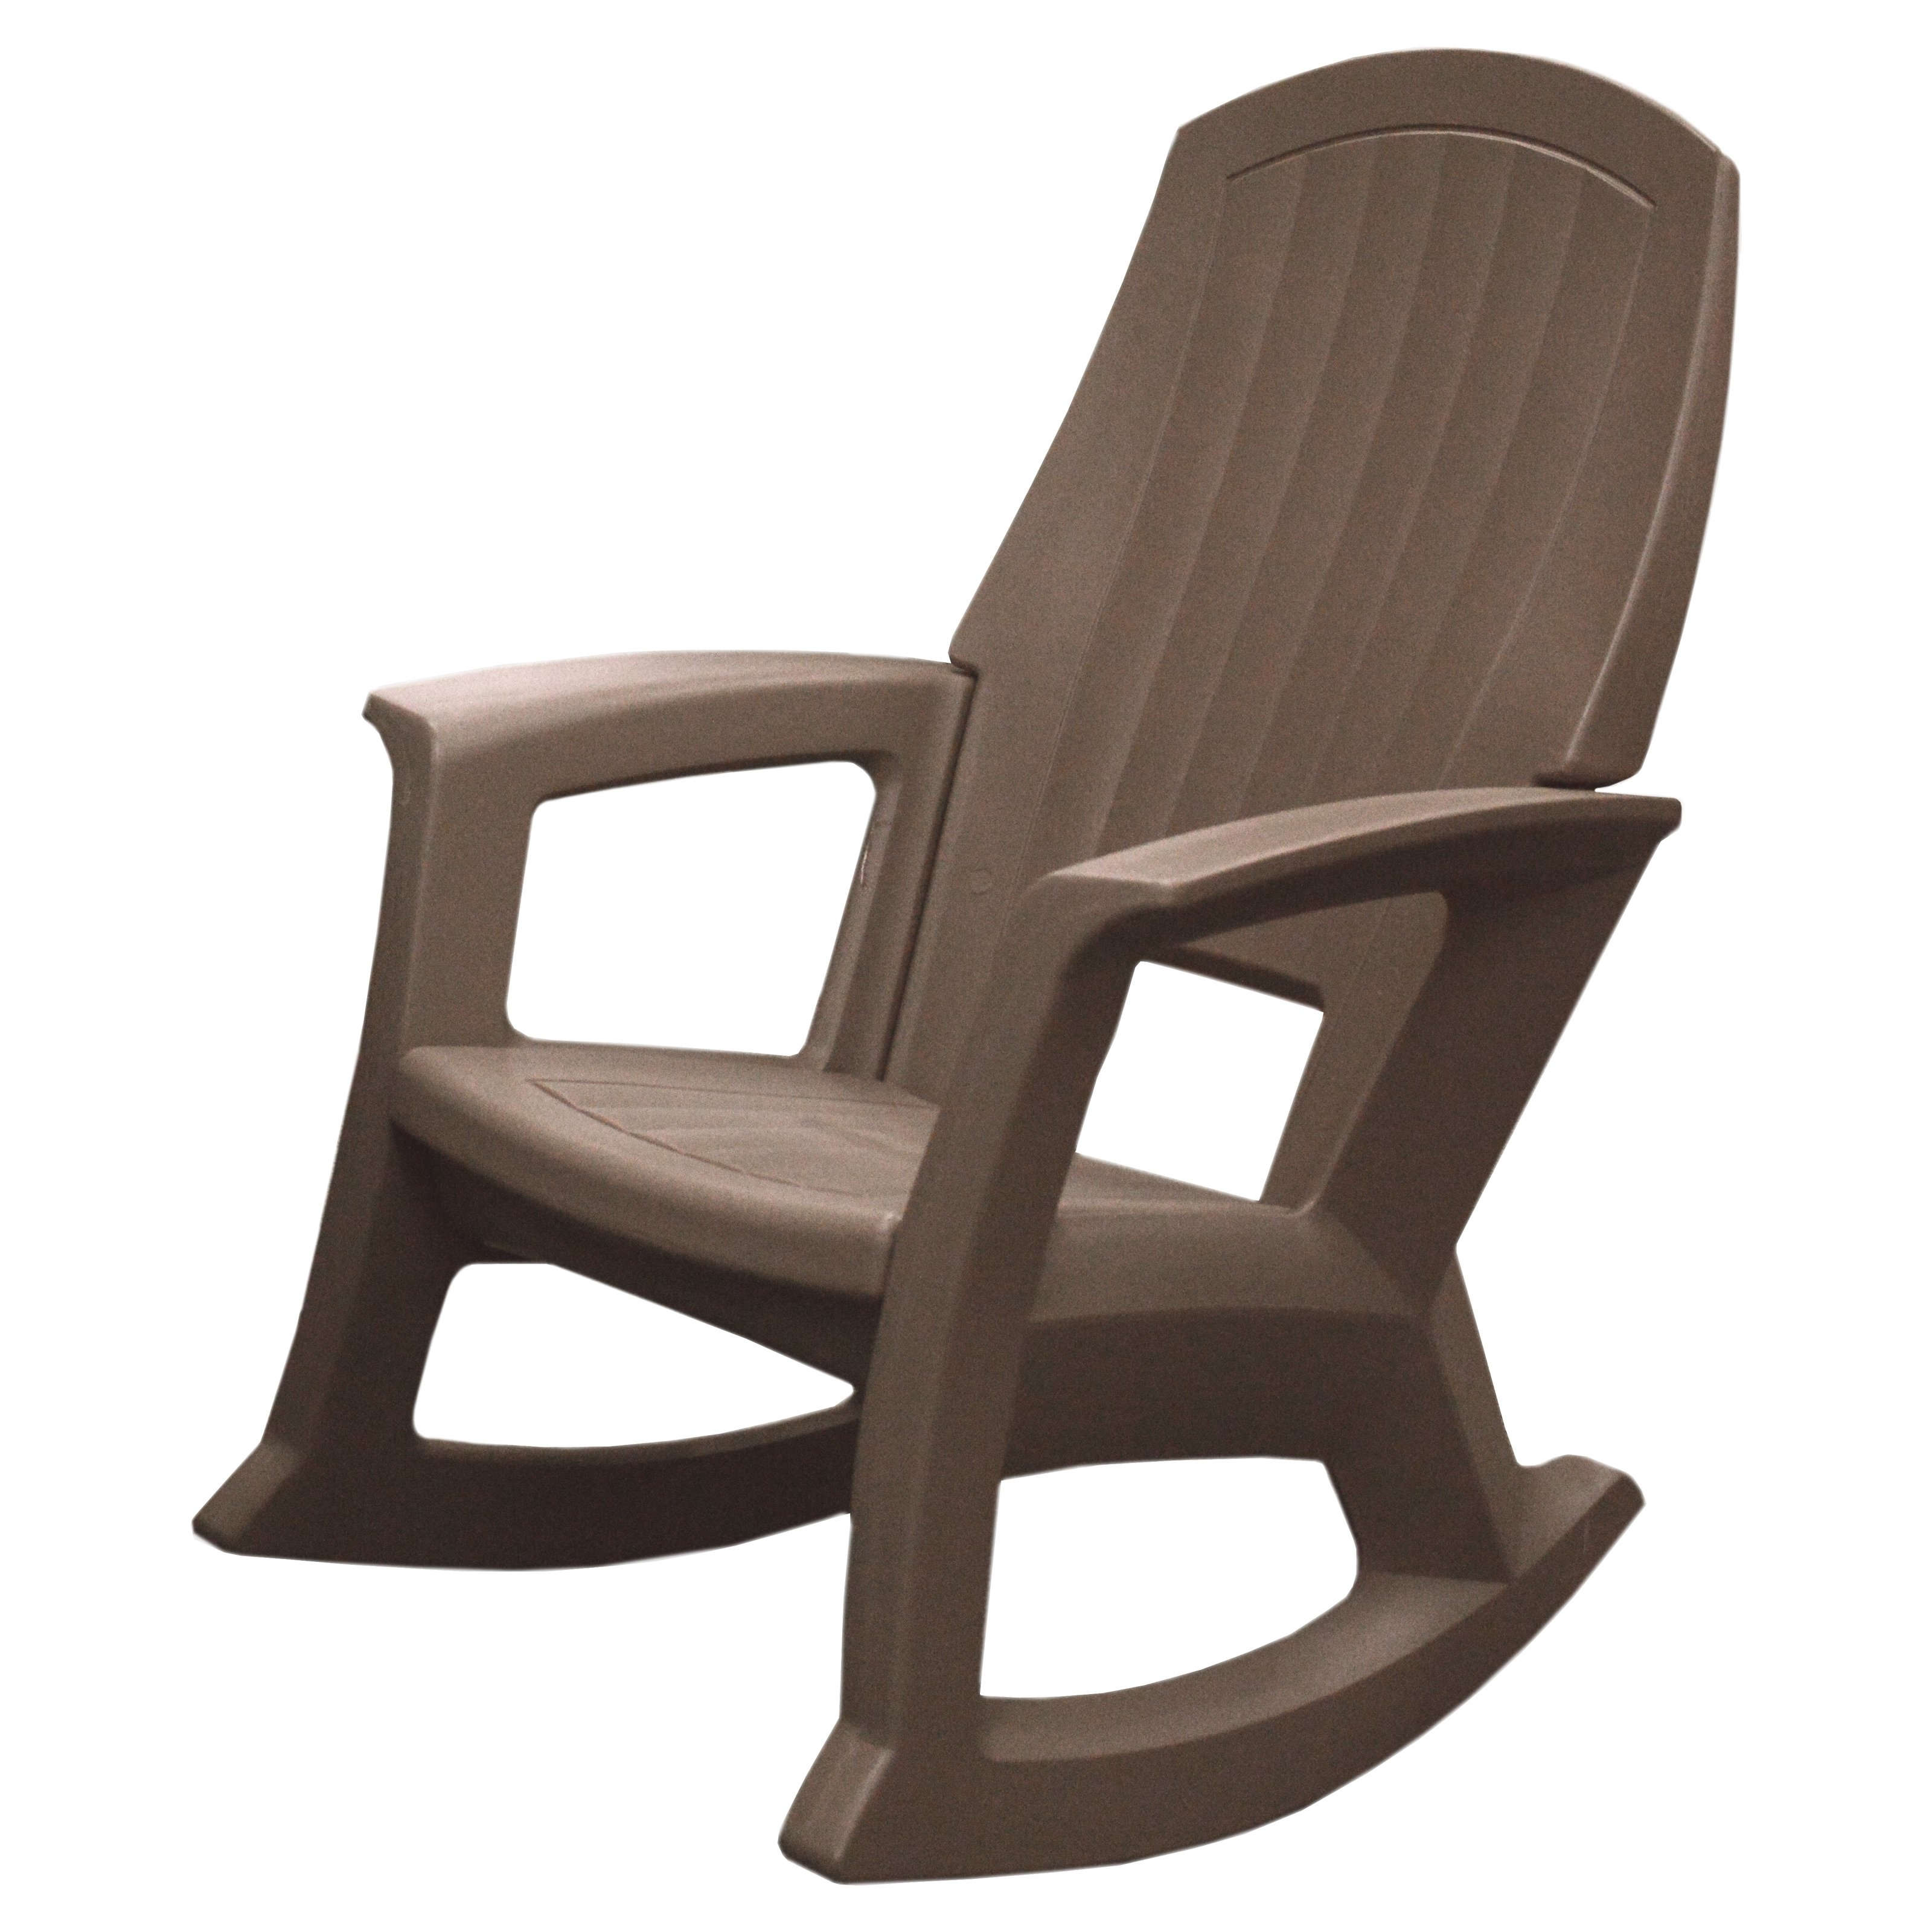 Semco Recycled Plastic Rocking Chair | Ebay Throughout Plastic Patio Rocking Chairs (View 13 of 15)